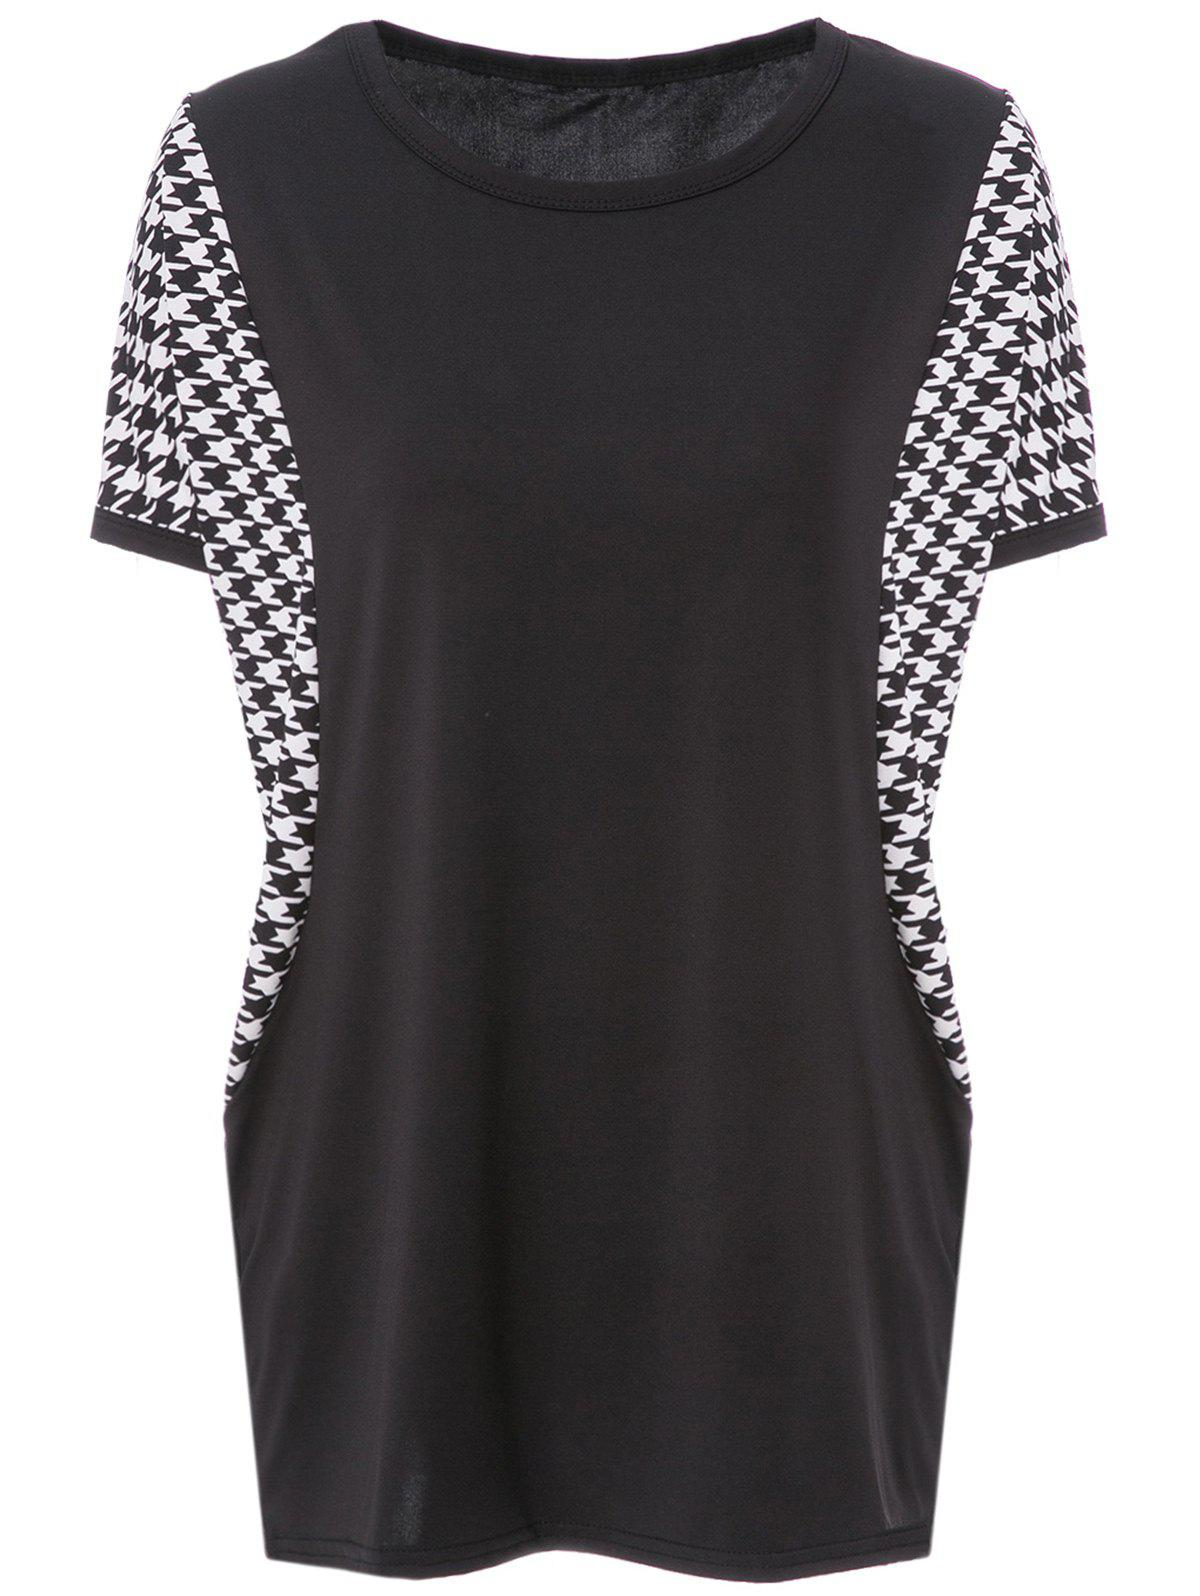 Stylish Scoop Neck Houndstooth Dolman Sleeve T-Shirt For Women - BLACK L